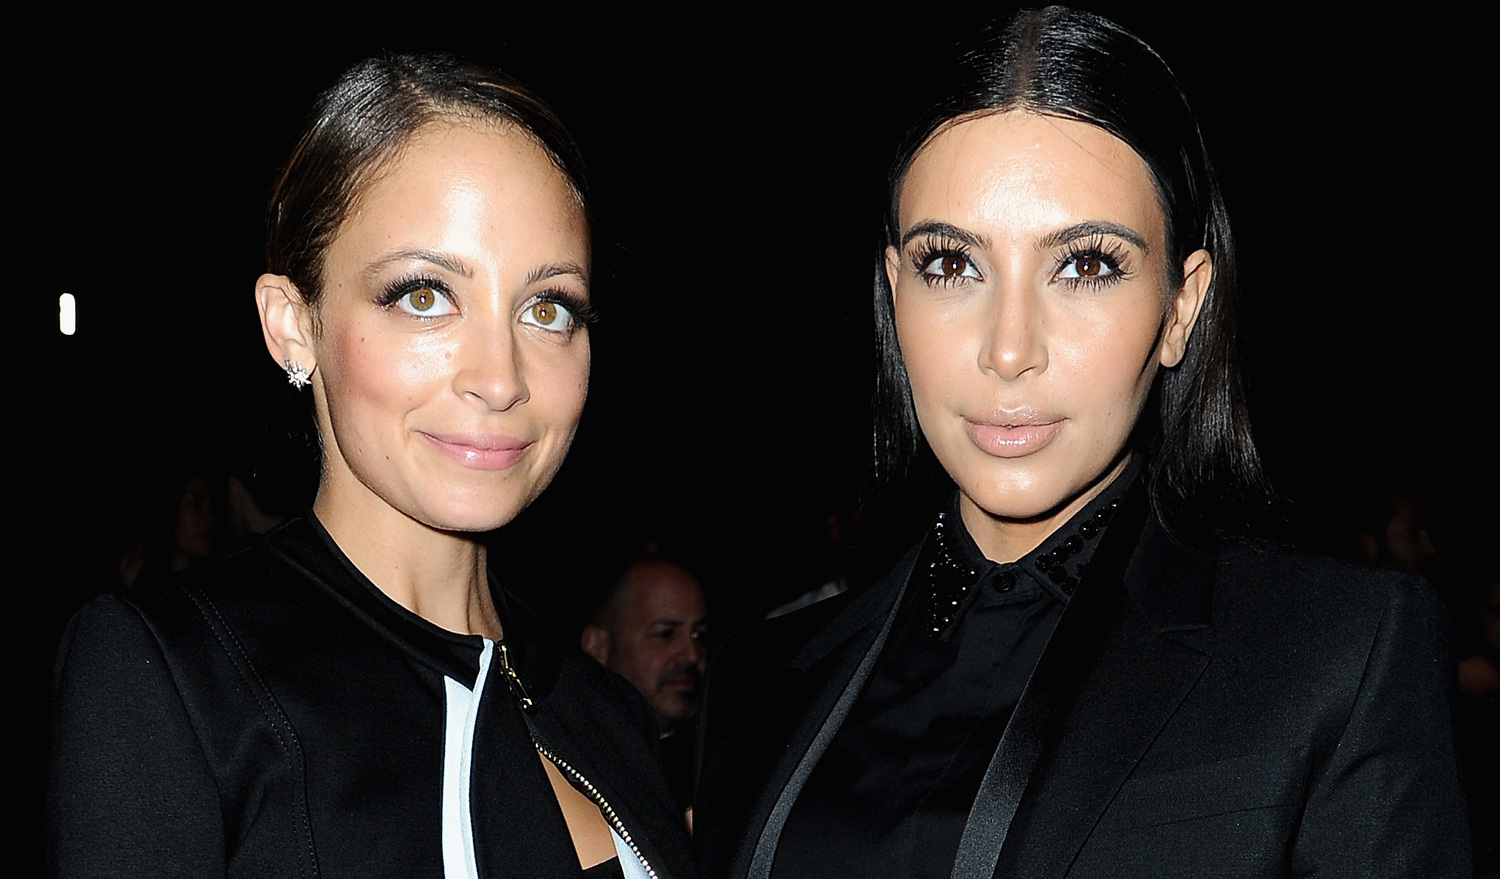 Kim Kardashian & Nicole Richie Shoplifted Together at Age 11